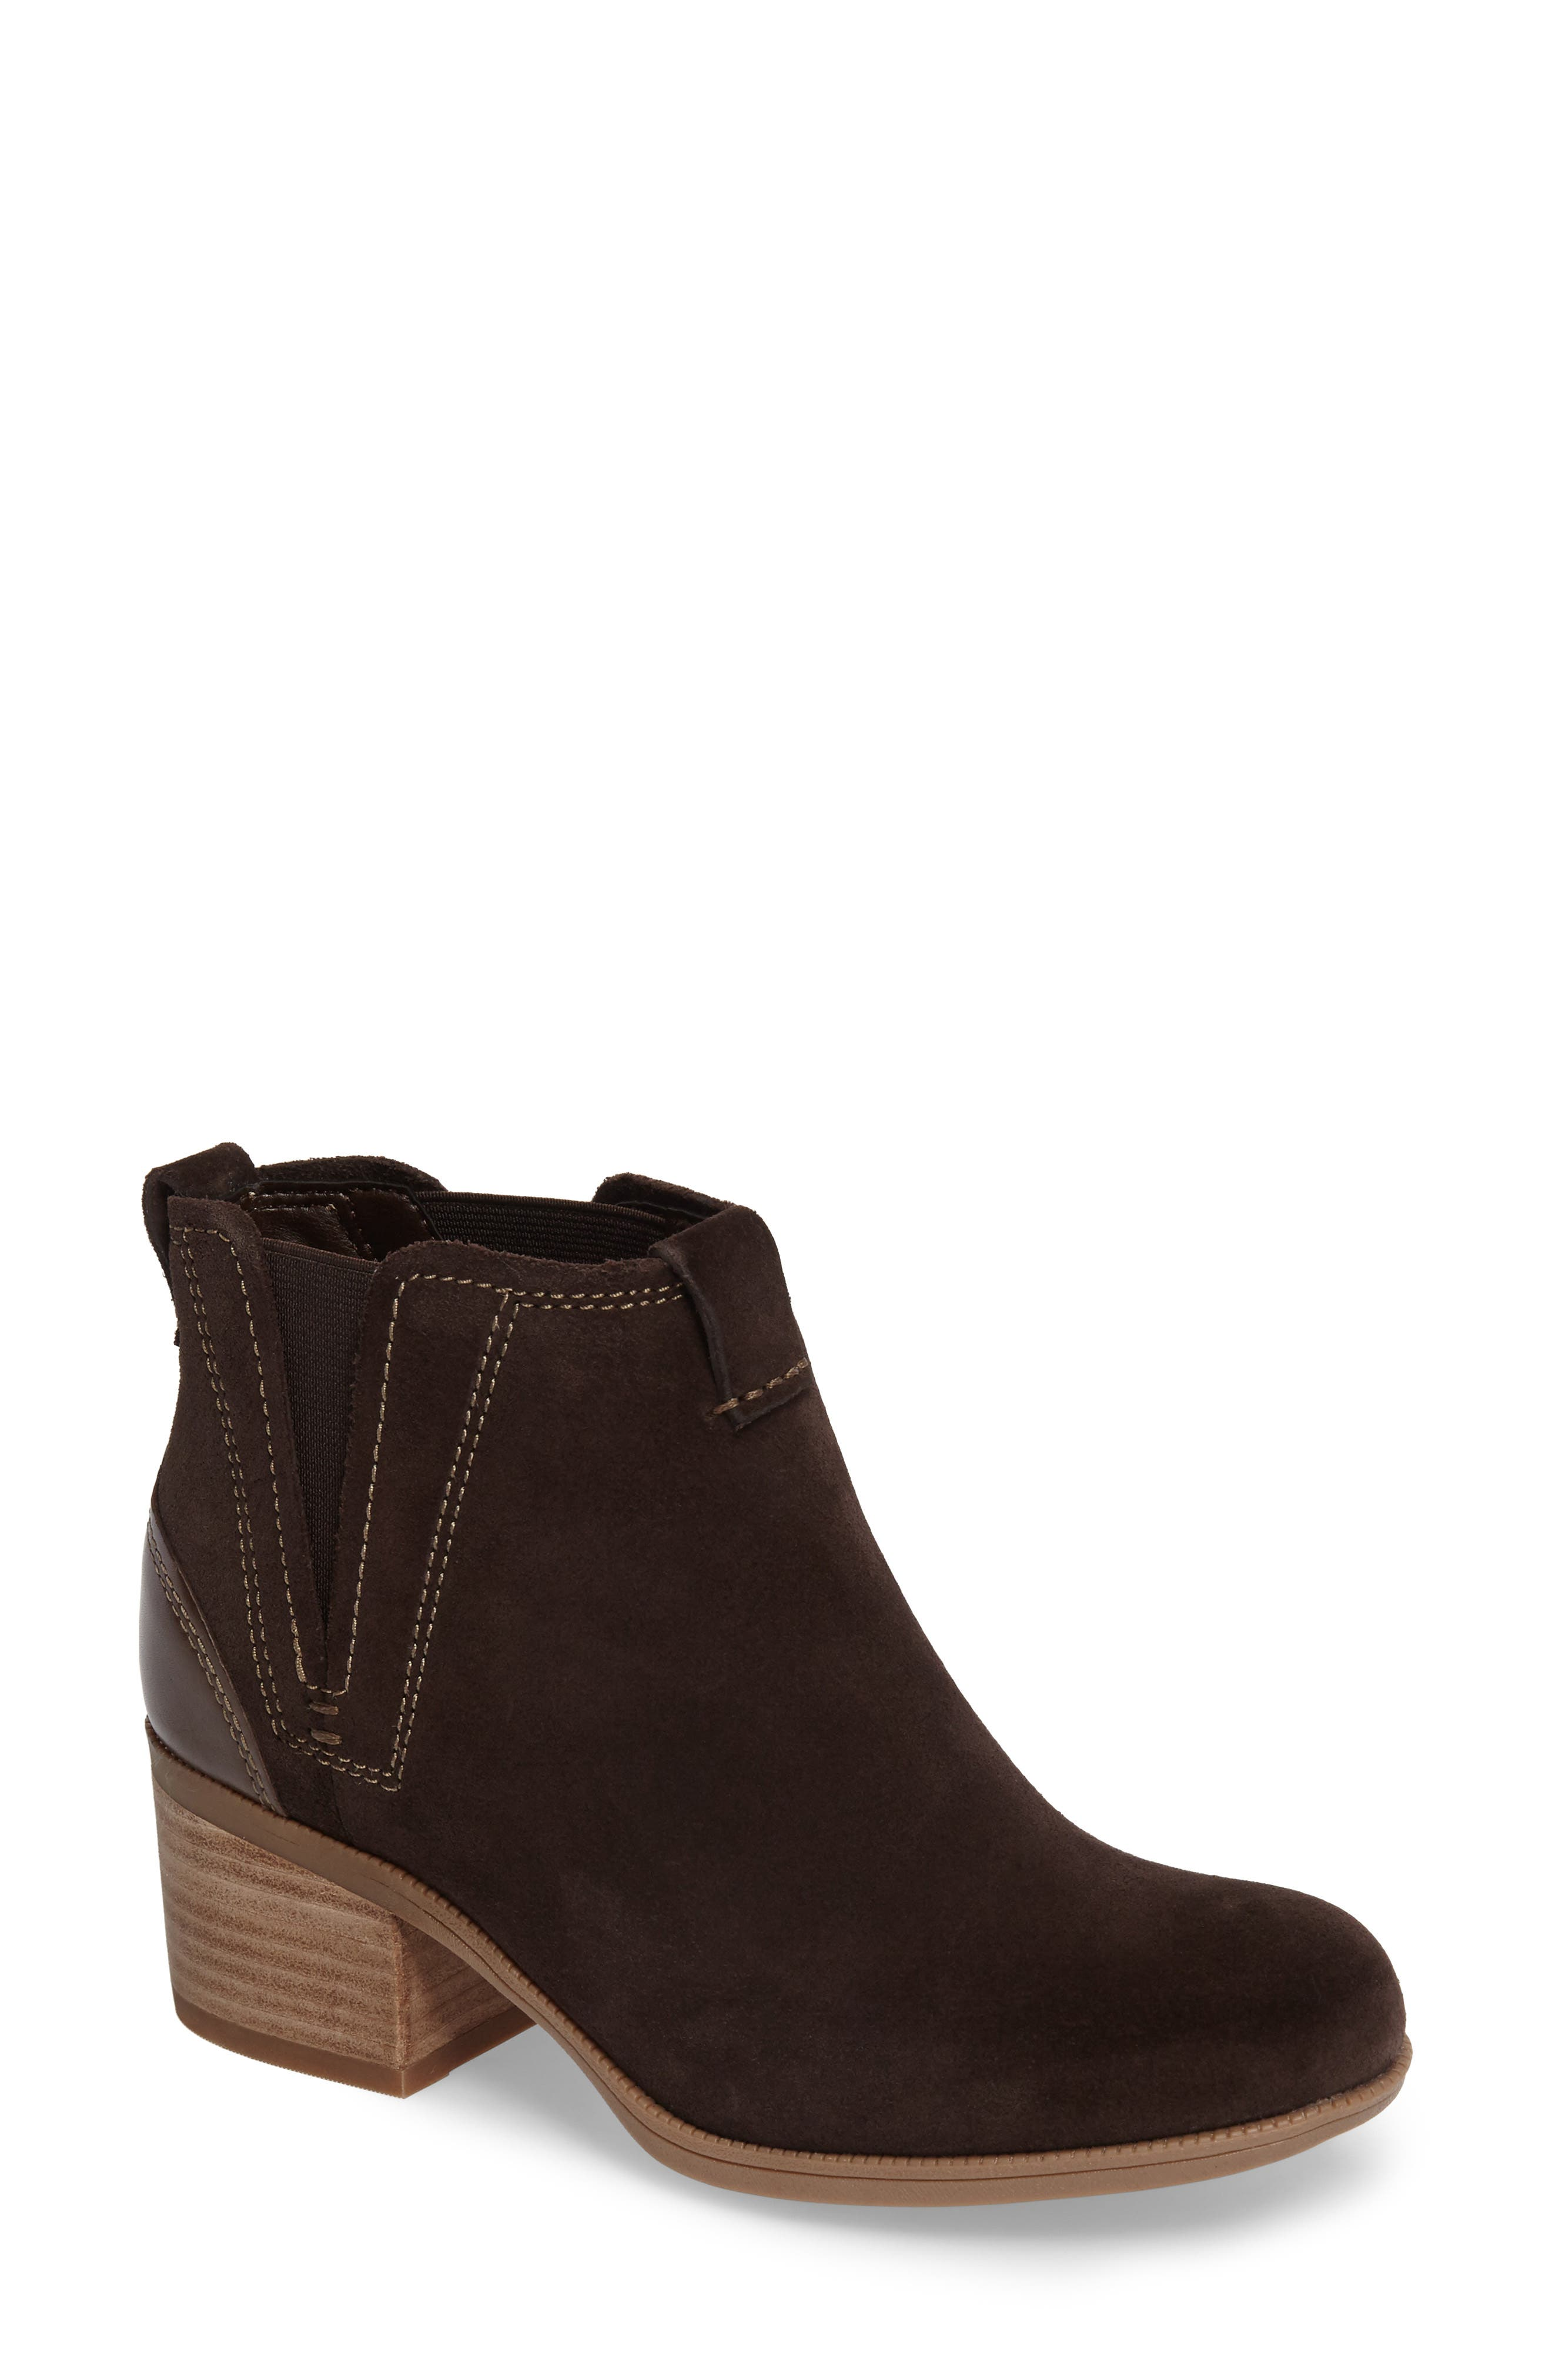 Maypearl Daisy Bootie,                             Main thumbnail 1, color,                             Dark Brown Suede